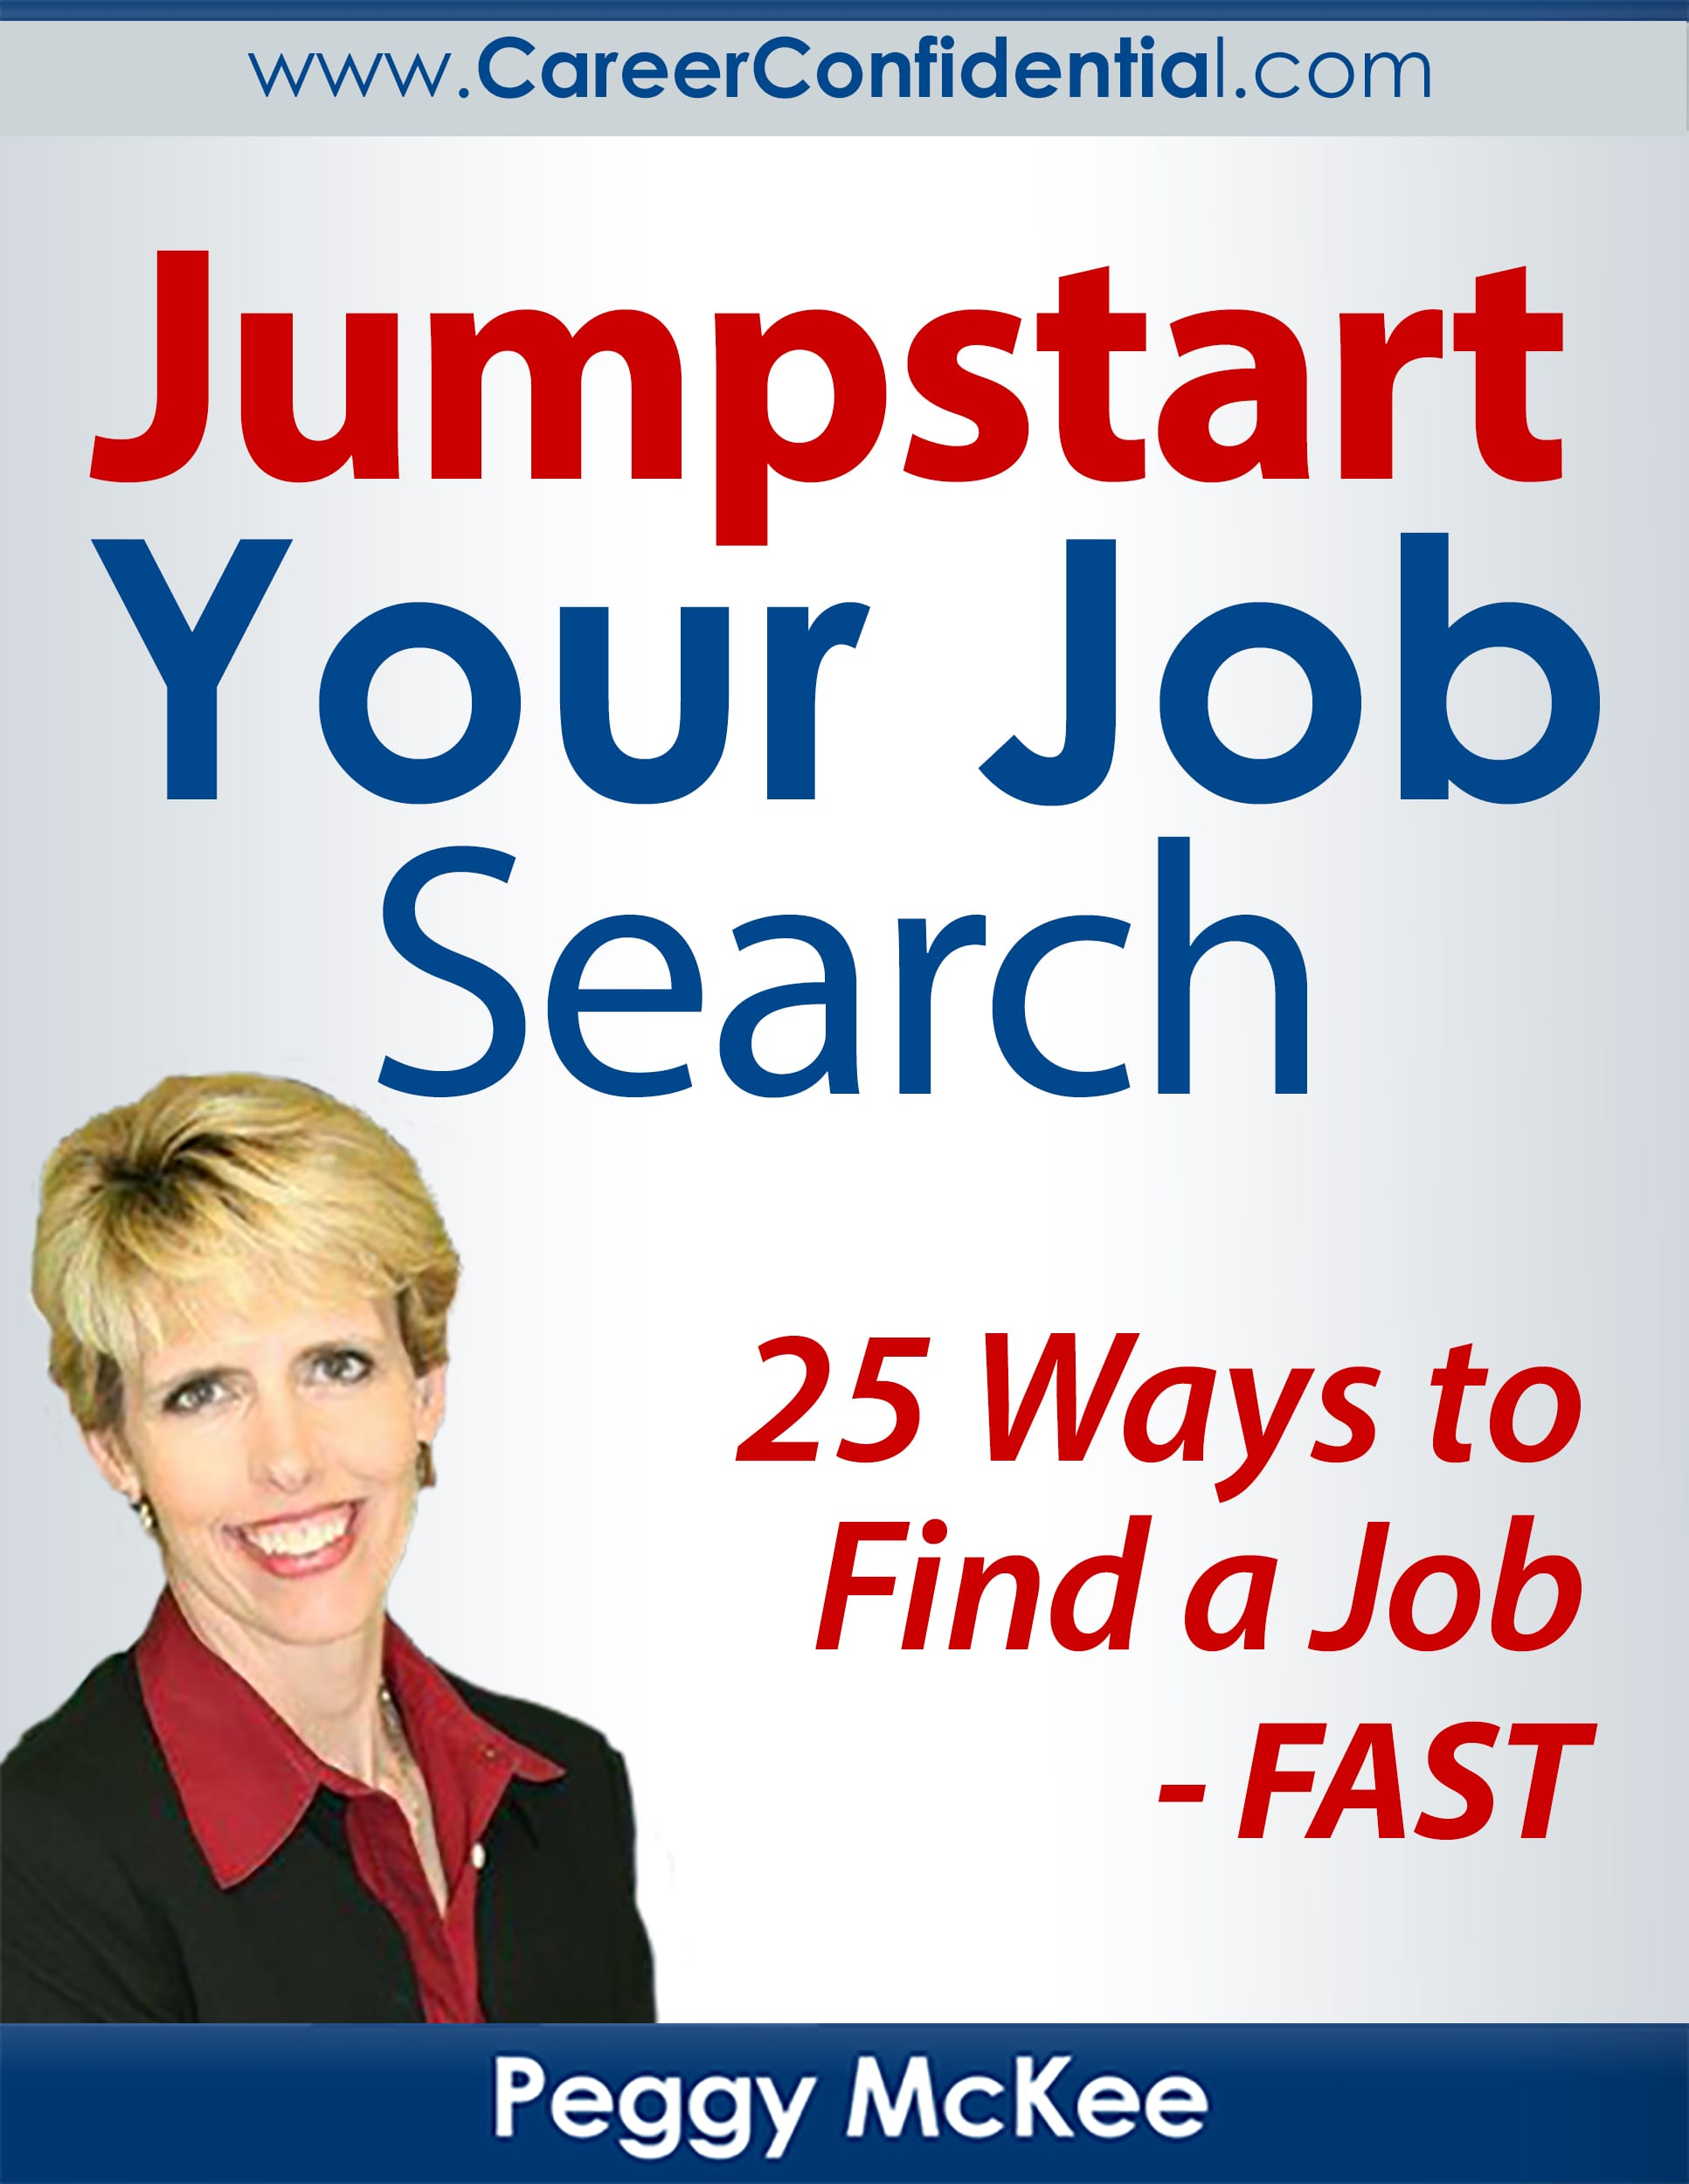 amazon kindle ebooks for your job search and interviews career jumpstart your job search flat final 2500